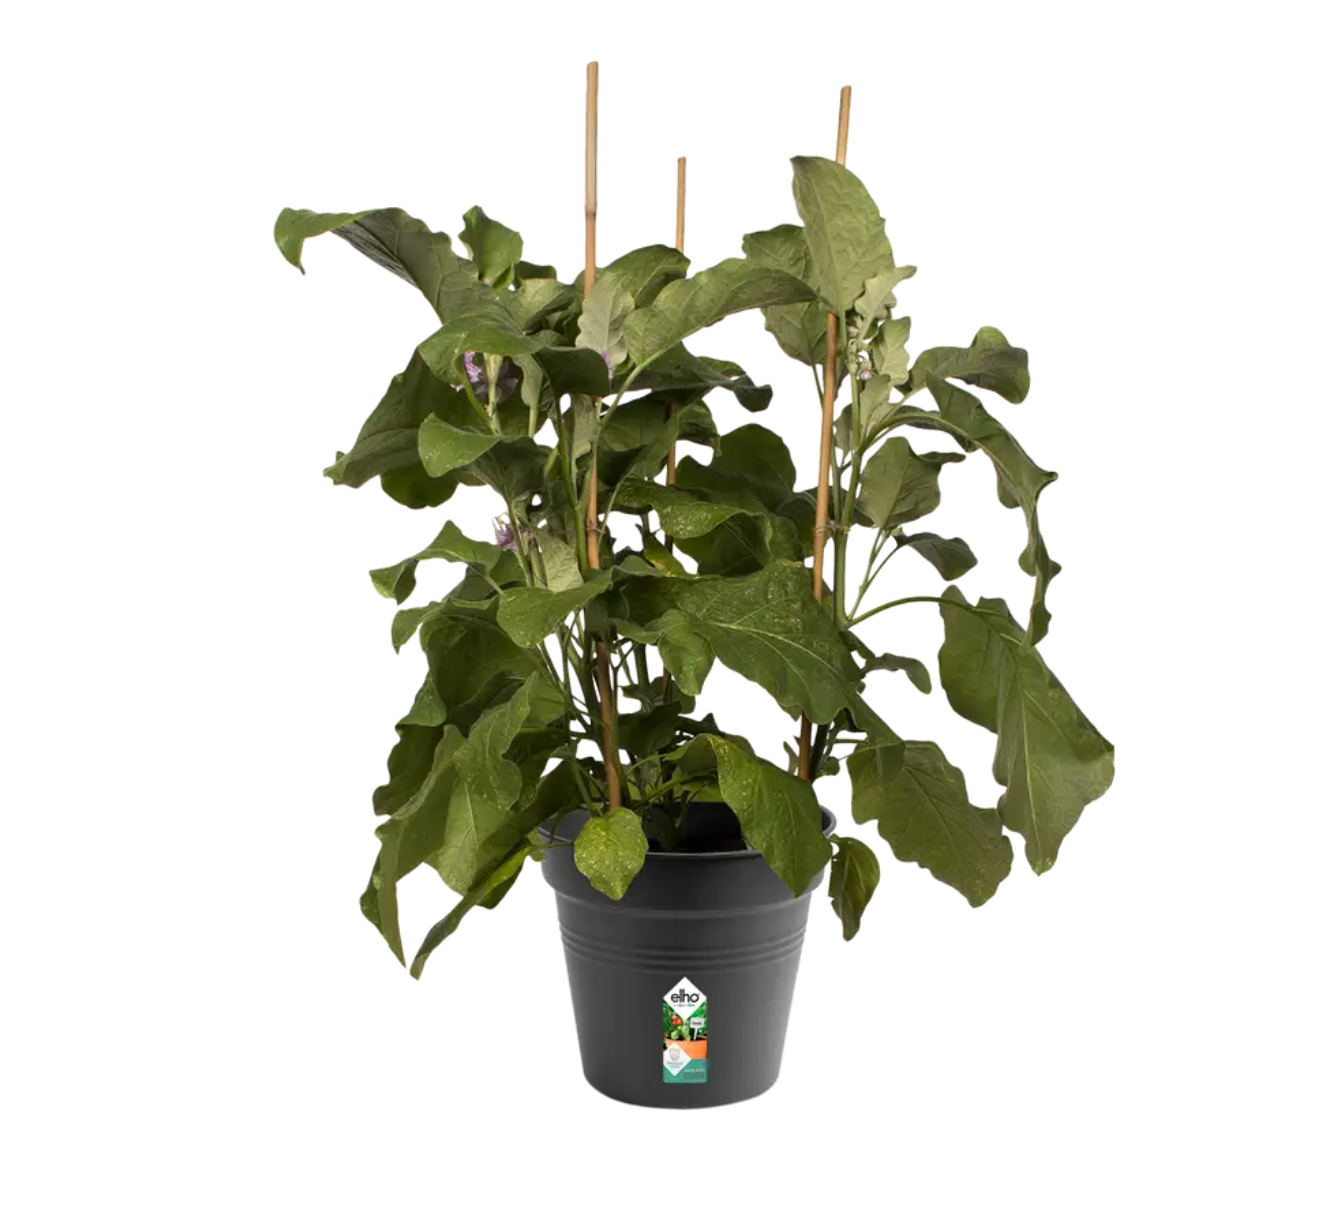 Easy Grow Pot 21cm